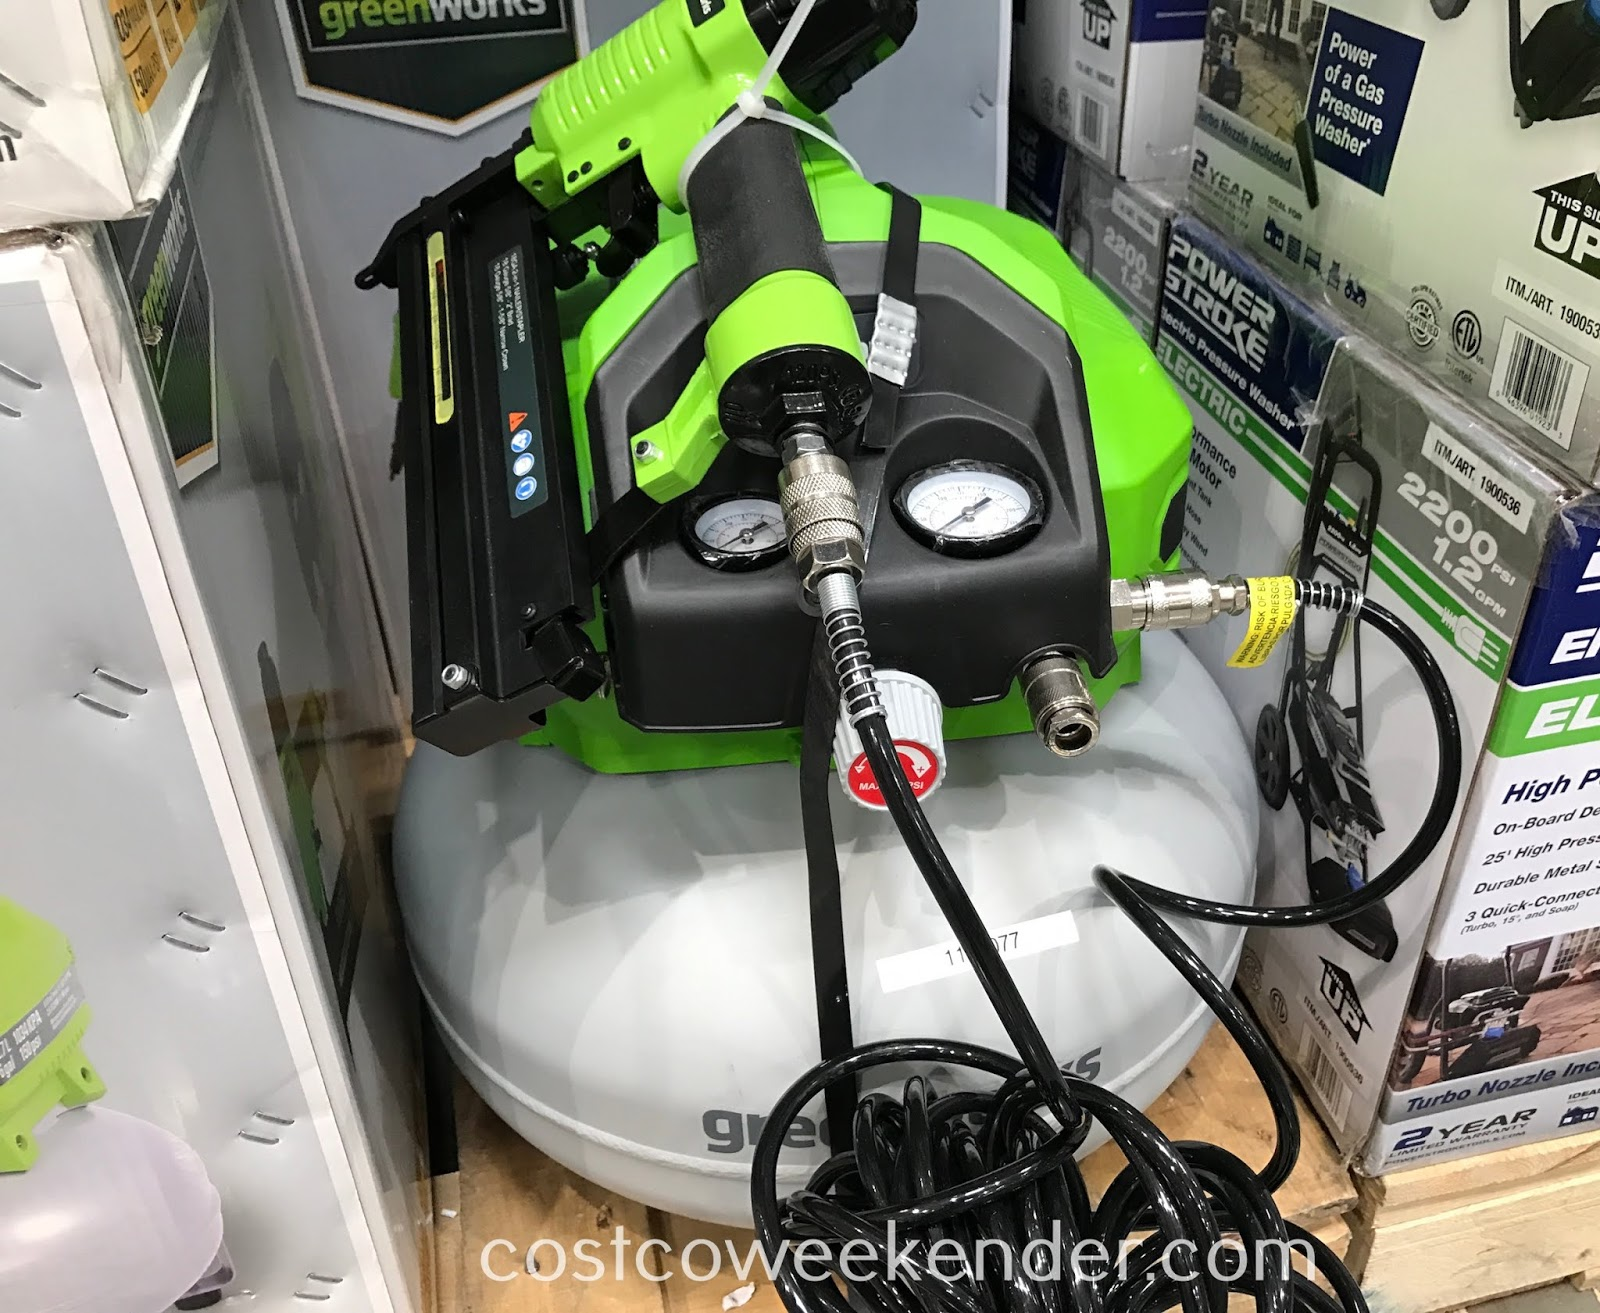 Easily operate a nail gun, impact wrench, or inflate tires quickly with the Greenworks 6-gallon Air Compressor Combo Kit